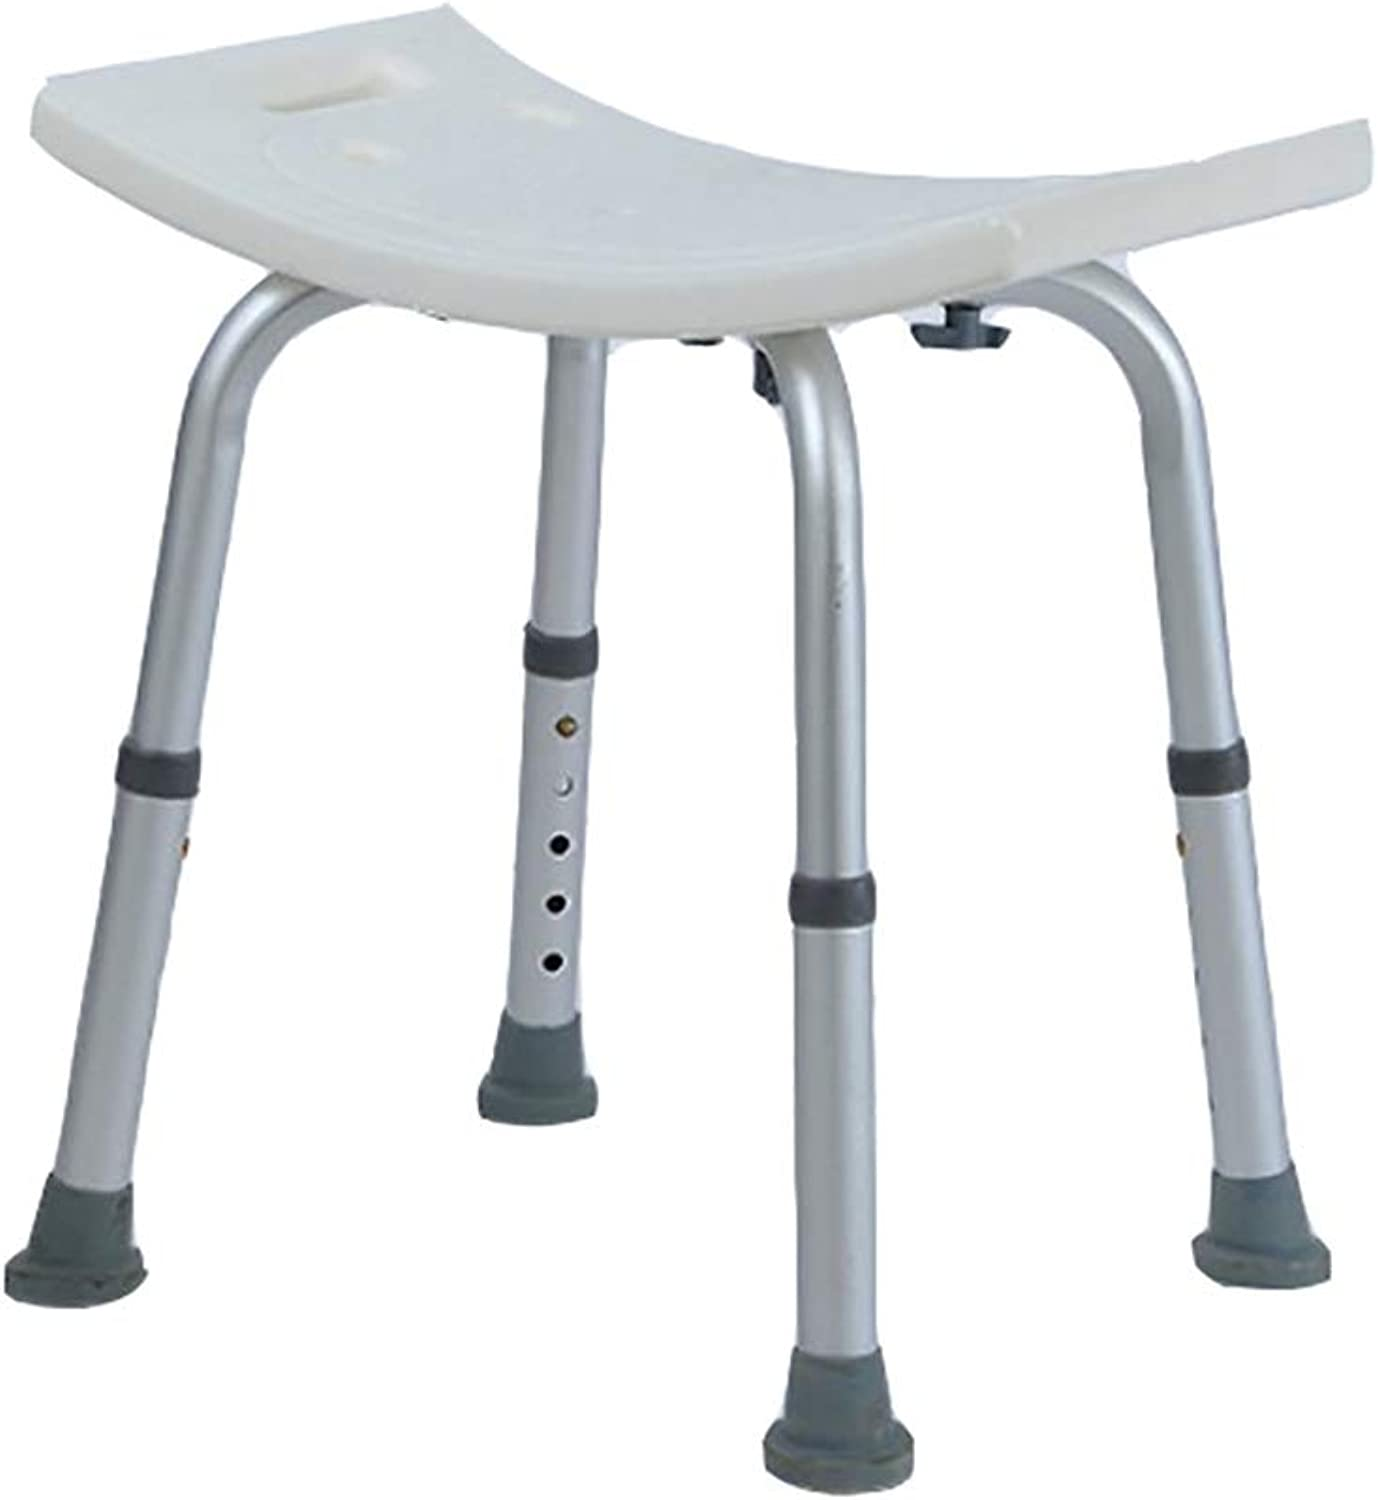 YYSXZY Shower Stool Bathroom Bench and Chair, Non-Slip Shower Stool No Backrest Shower Chair, Aluminum Alloy, 110KG Load-Bearing (color   White)